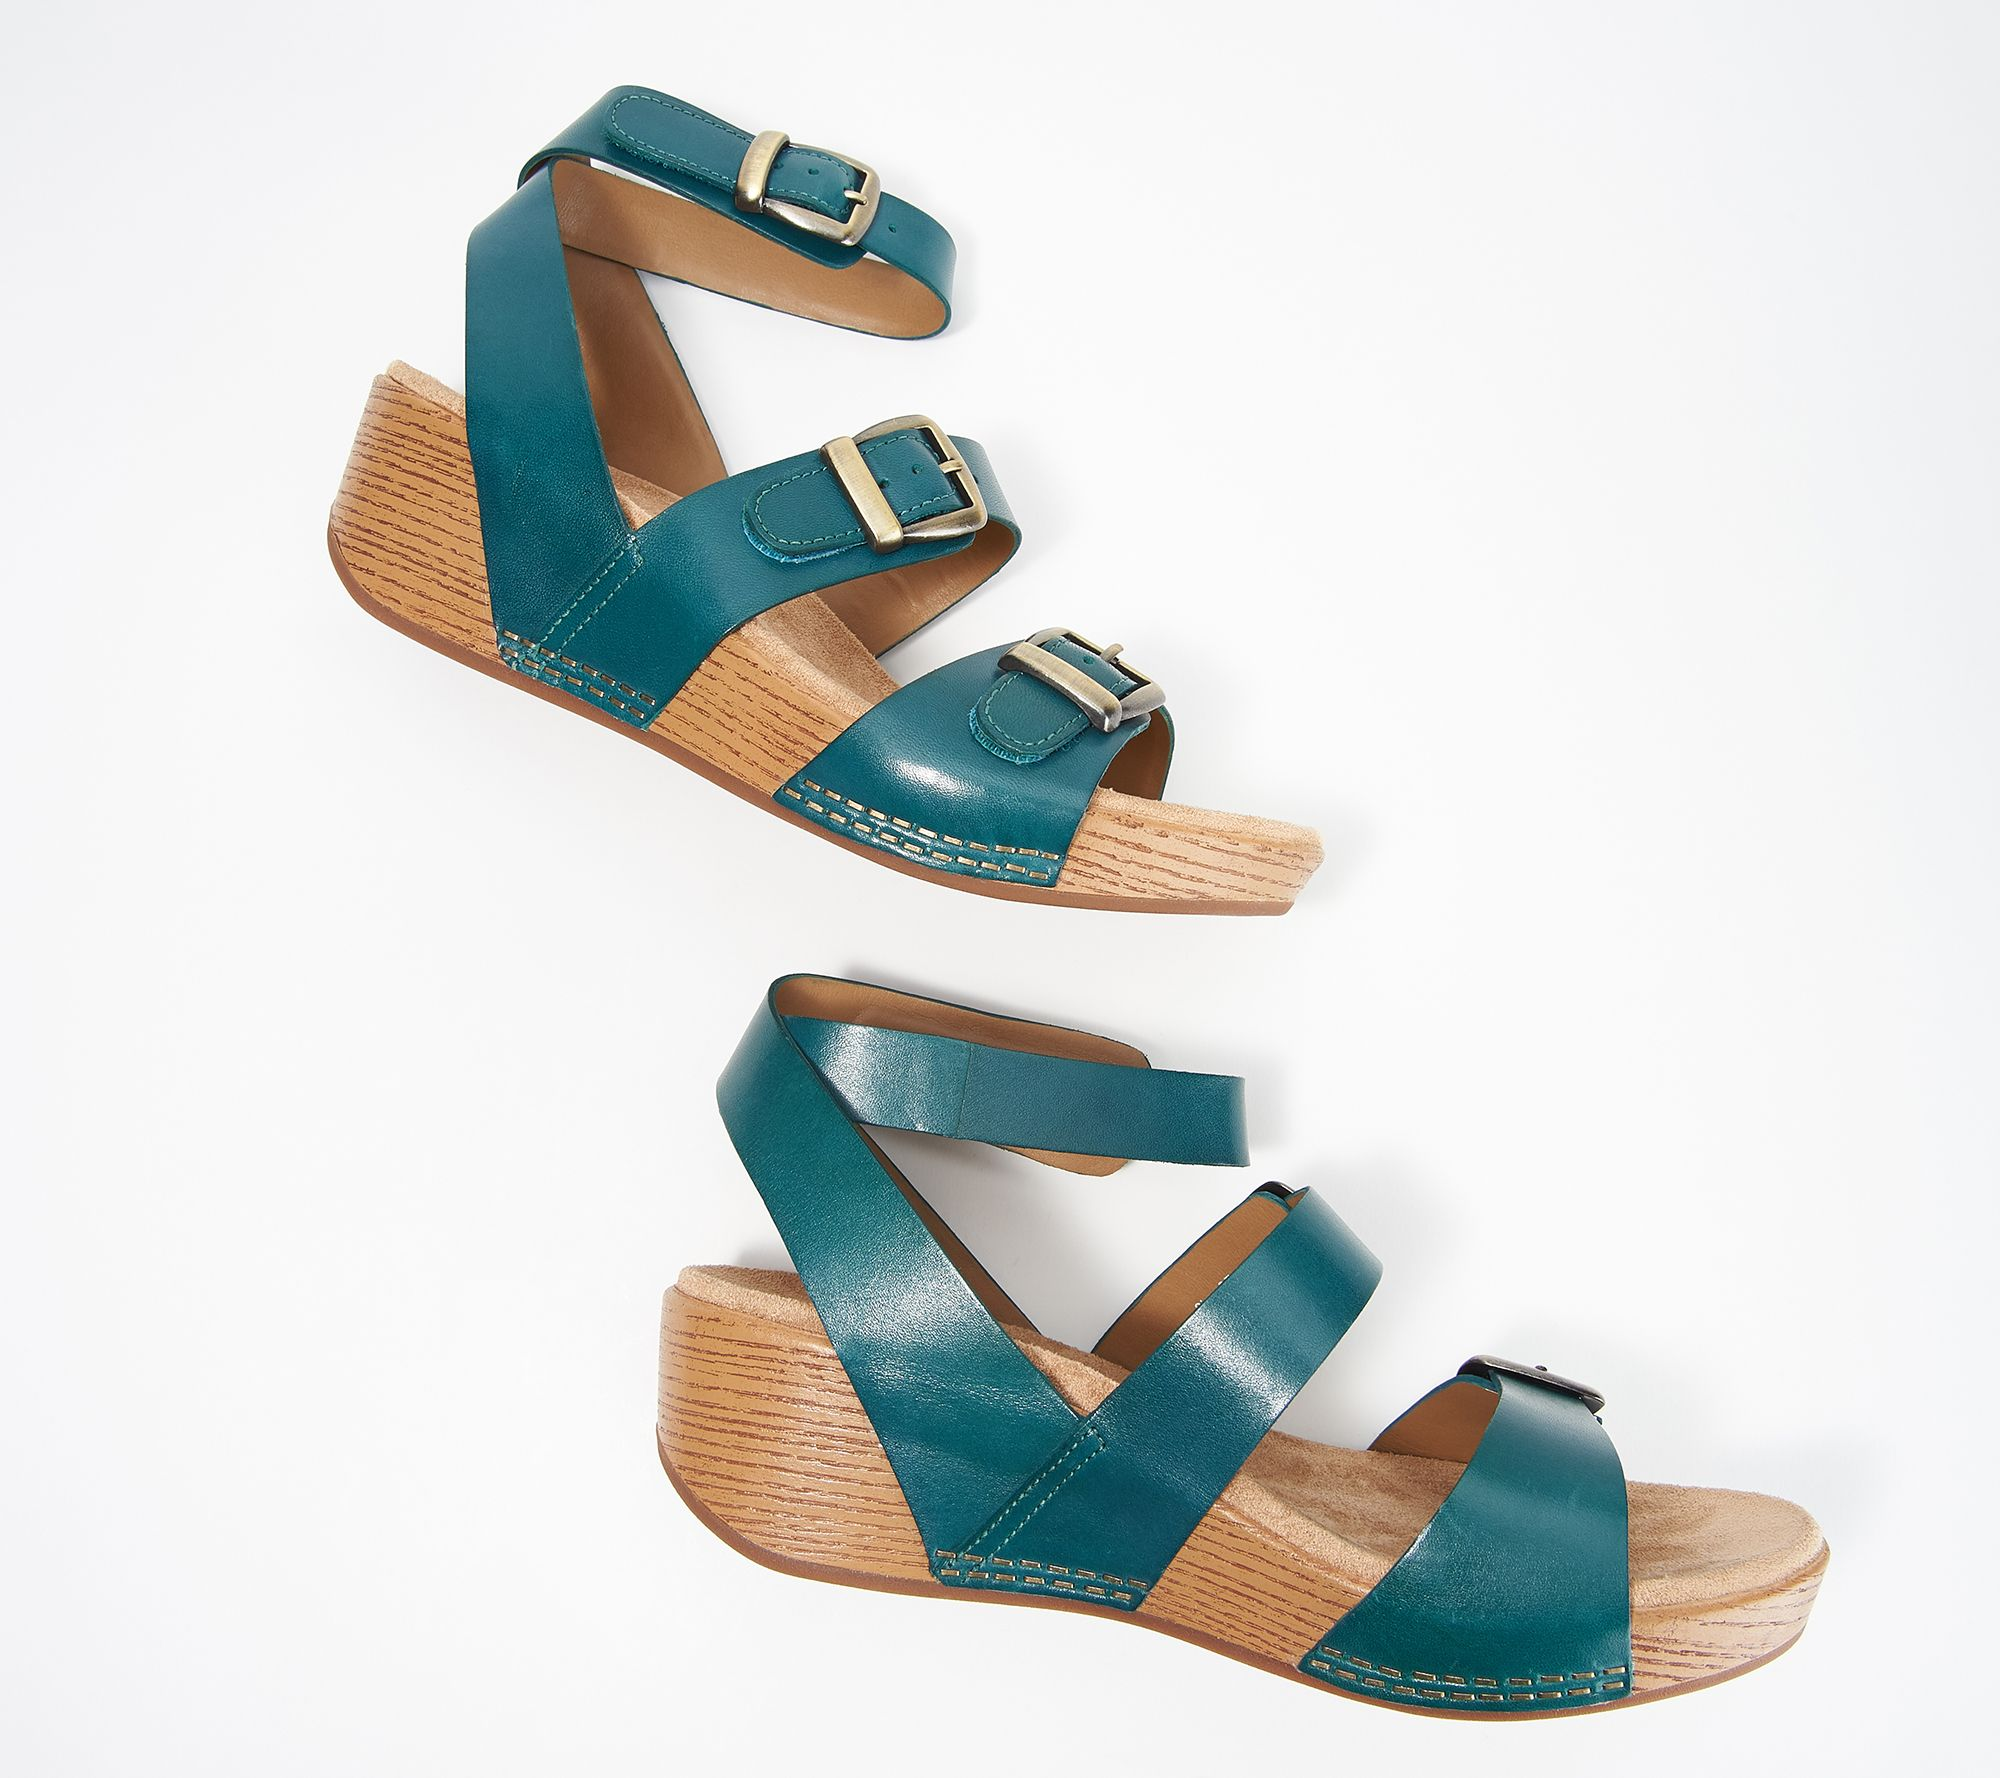 e66c2e306340b Dansko Leather Ankle Strap Wedges - Lou - Page 1 — QVC.com